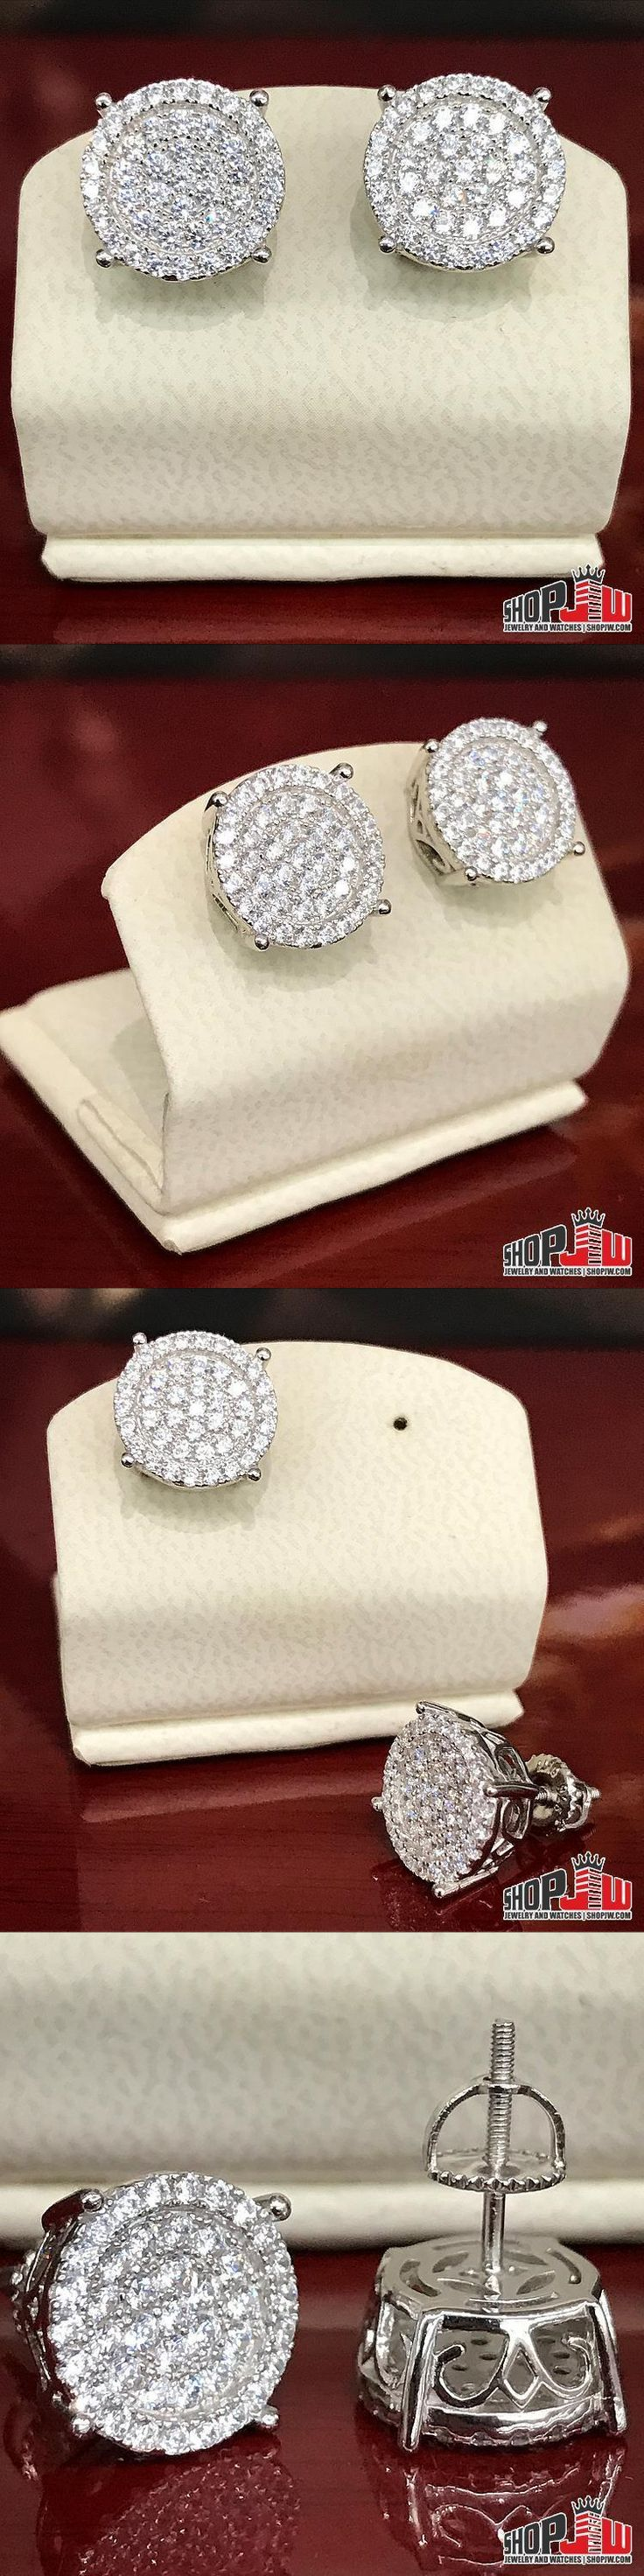 Earrings Studs 14085: Mens 14K White Gold Finish .925 Silver Screw Back Earrings Round Iced Out Style -> BUY IT NOW ONLY: $50 on eBay!